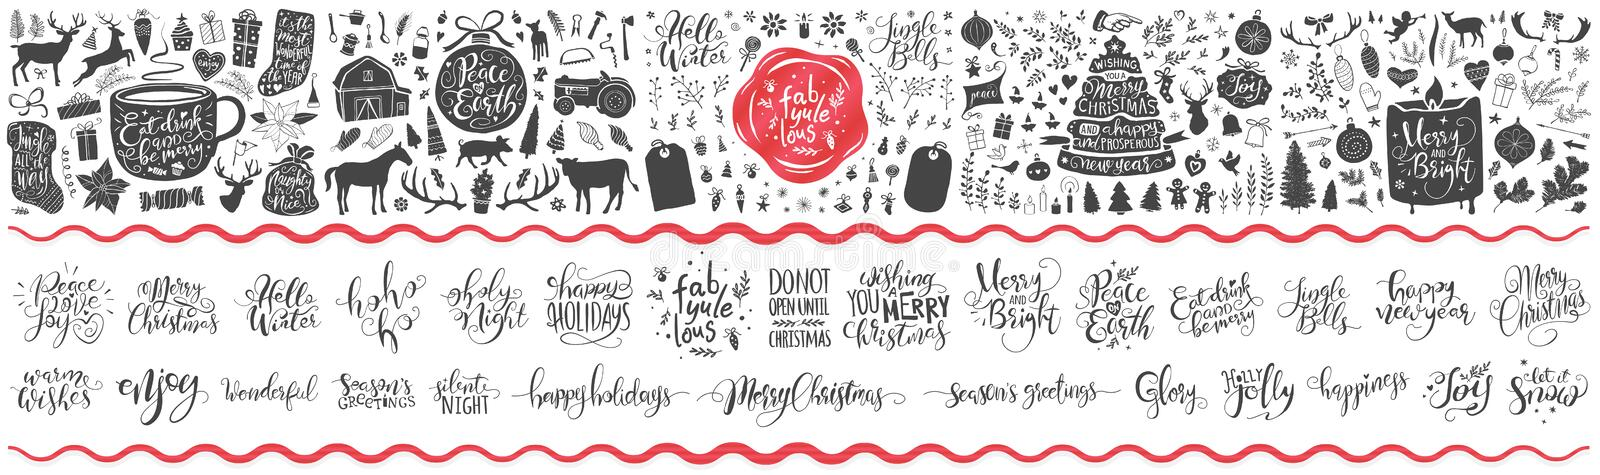 Huge collection of christmas ornaments, flowers, gifts, trees and much more. Hand lettered christmas greetings, words and quotes. Also included vector illustration